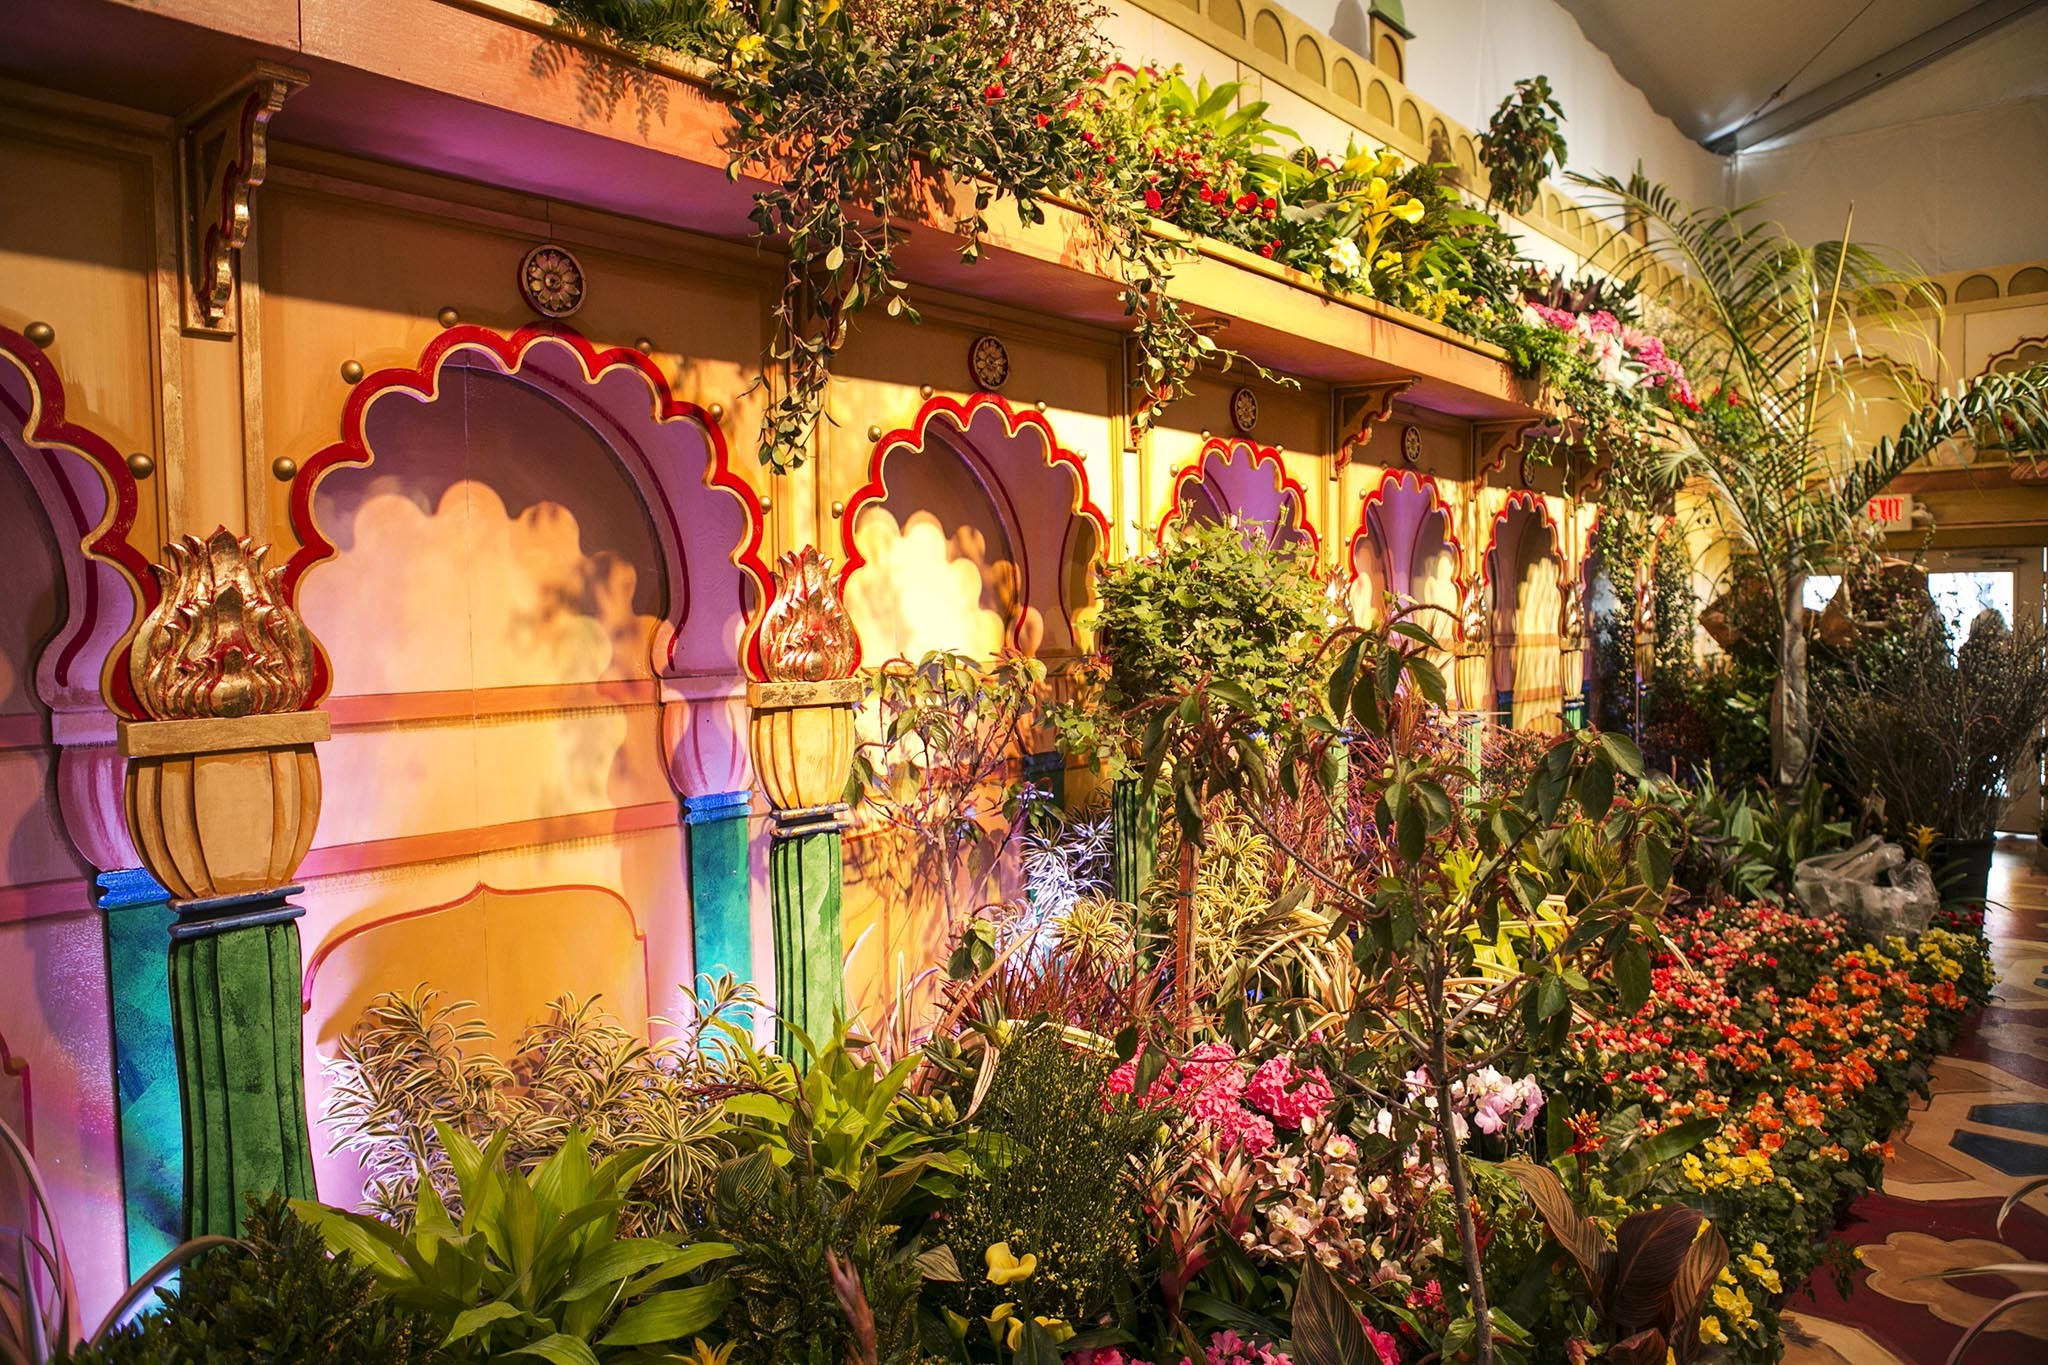 The Macy's Flower Show in NYC